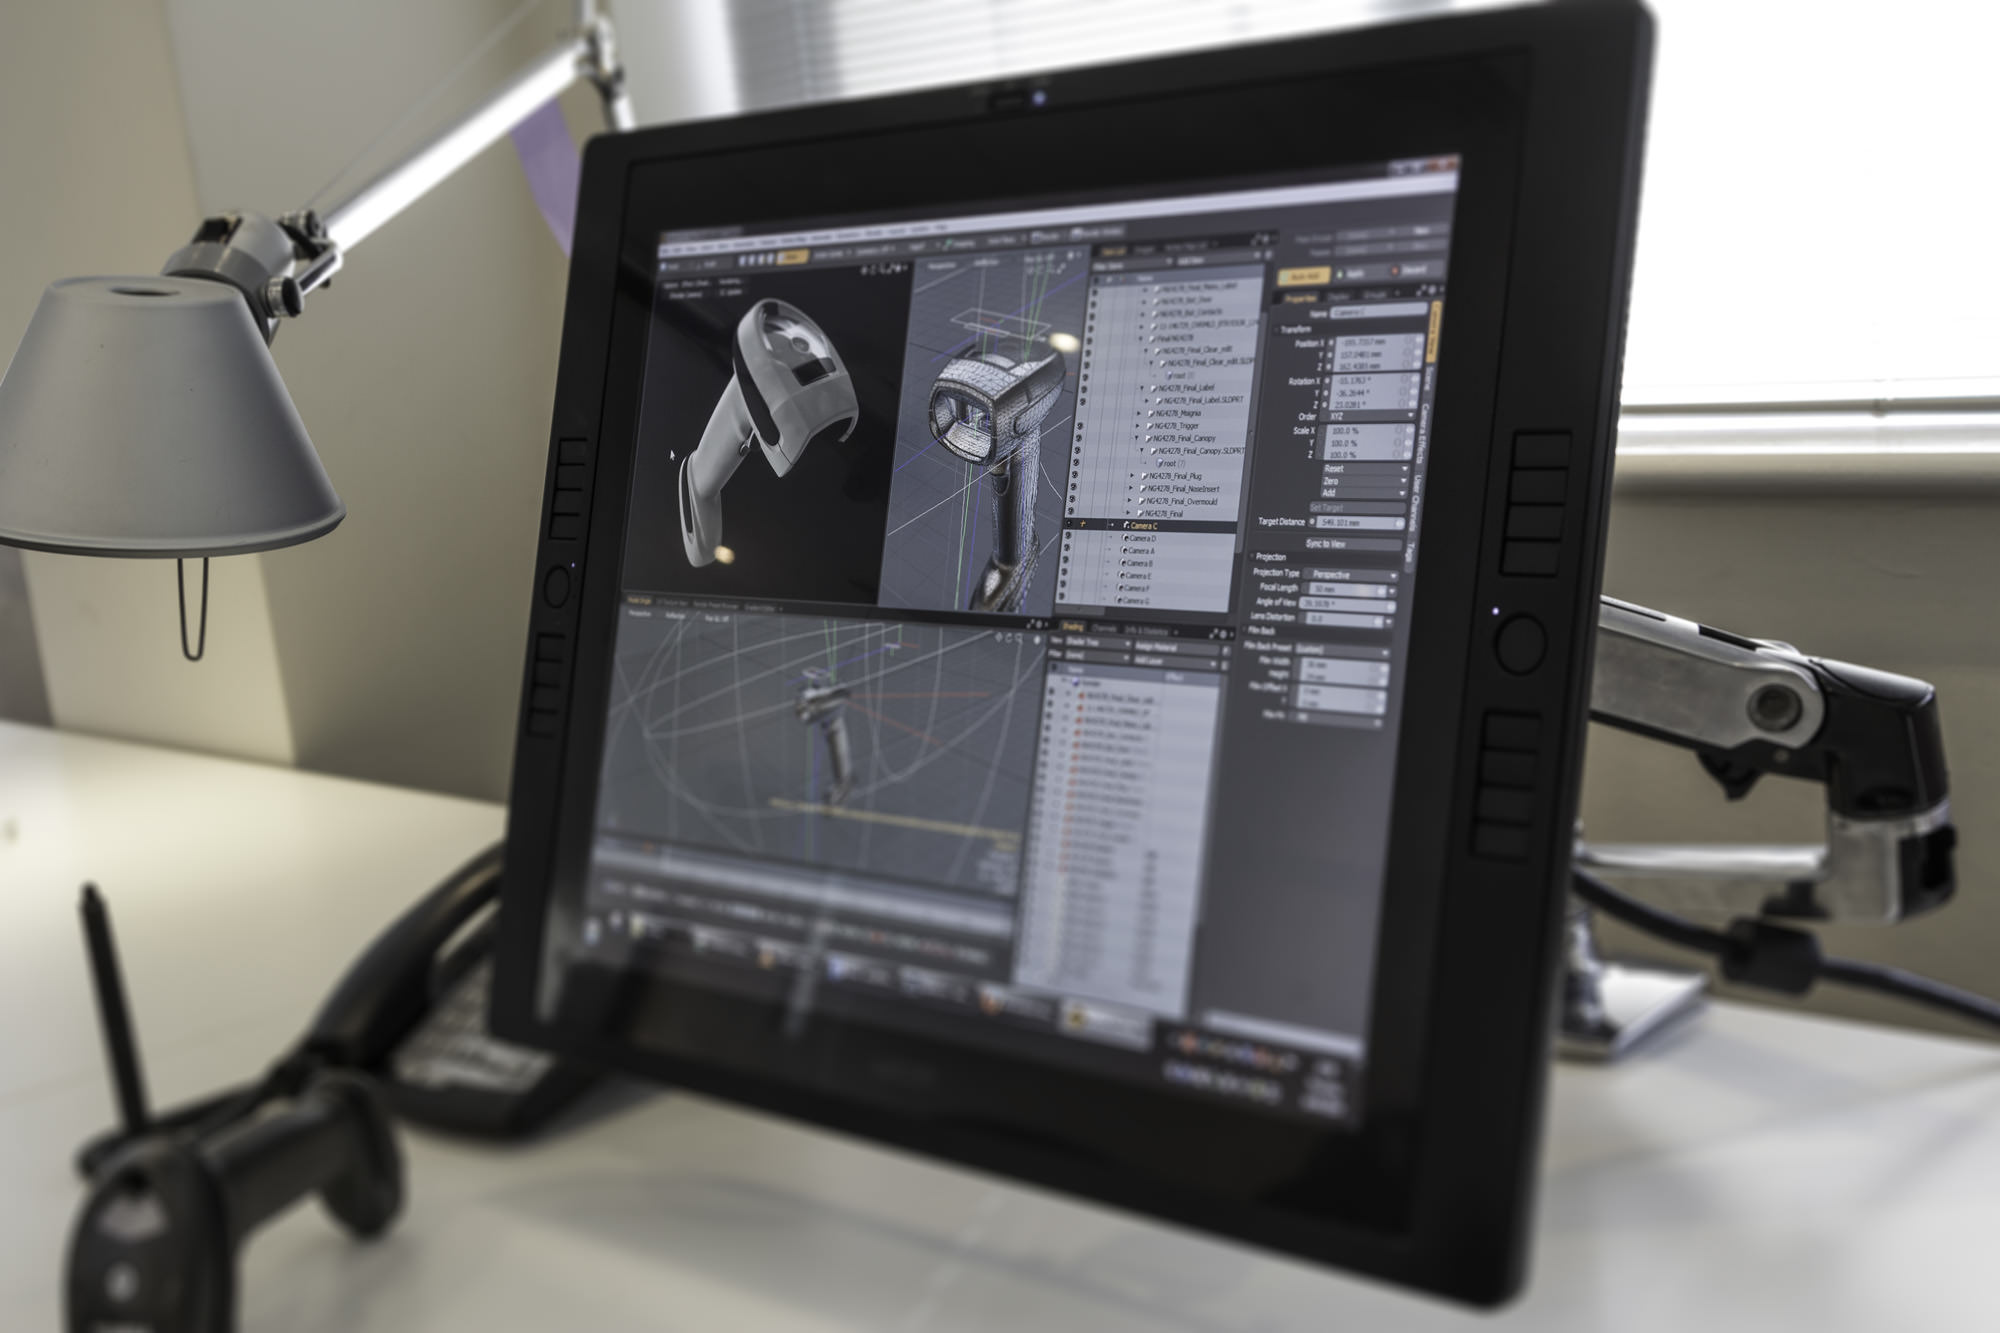 A Wacom Cintiq monitor at Thinkable Studio displaying a preview of a 3D rendered scene in Modo software